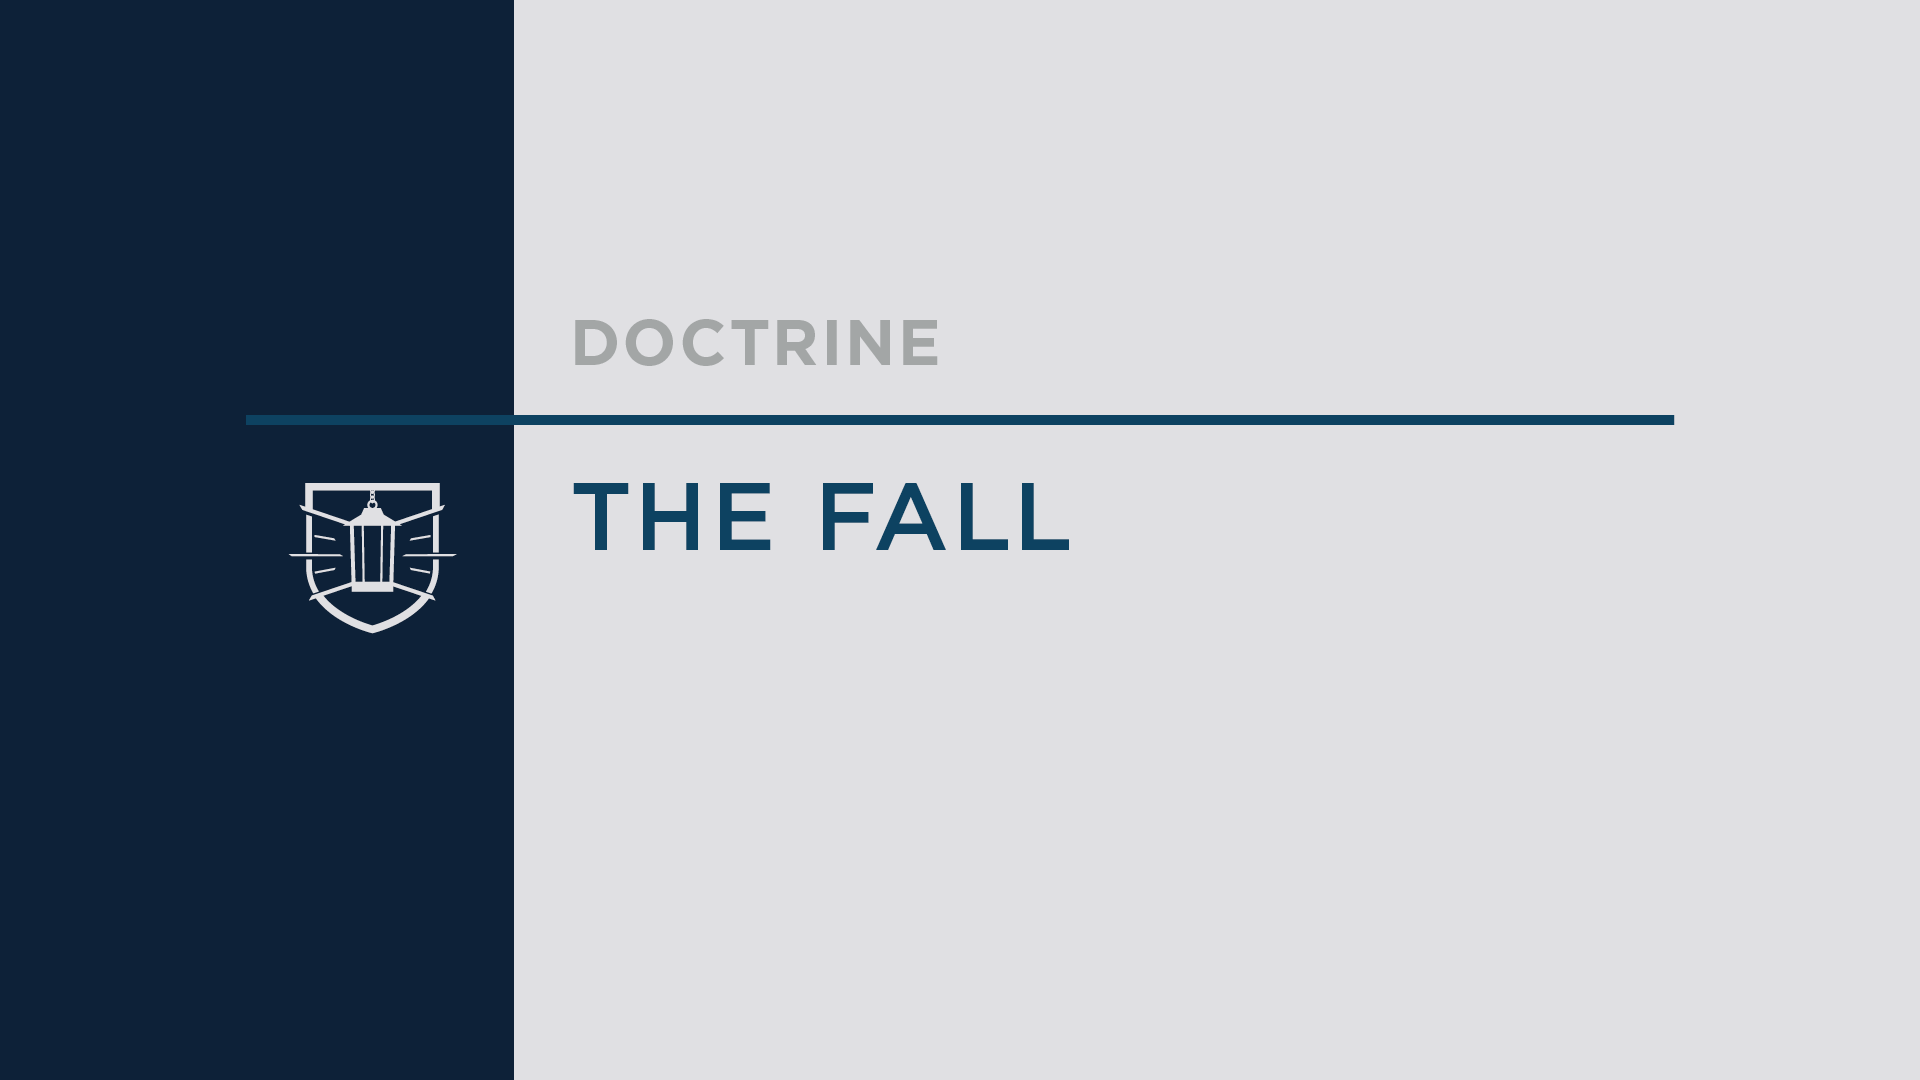 Doctrine 5: The Fall